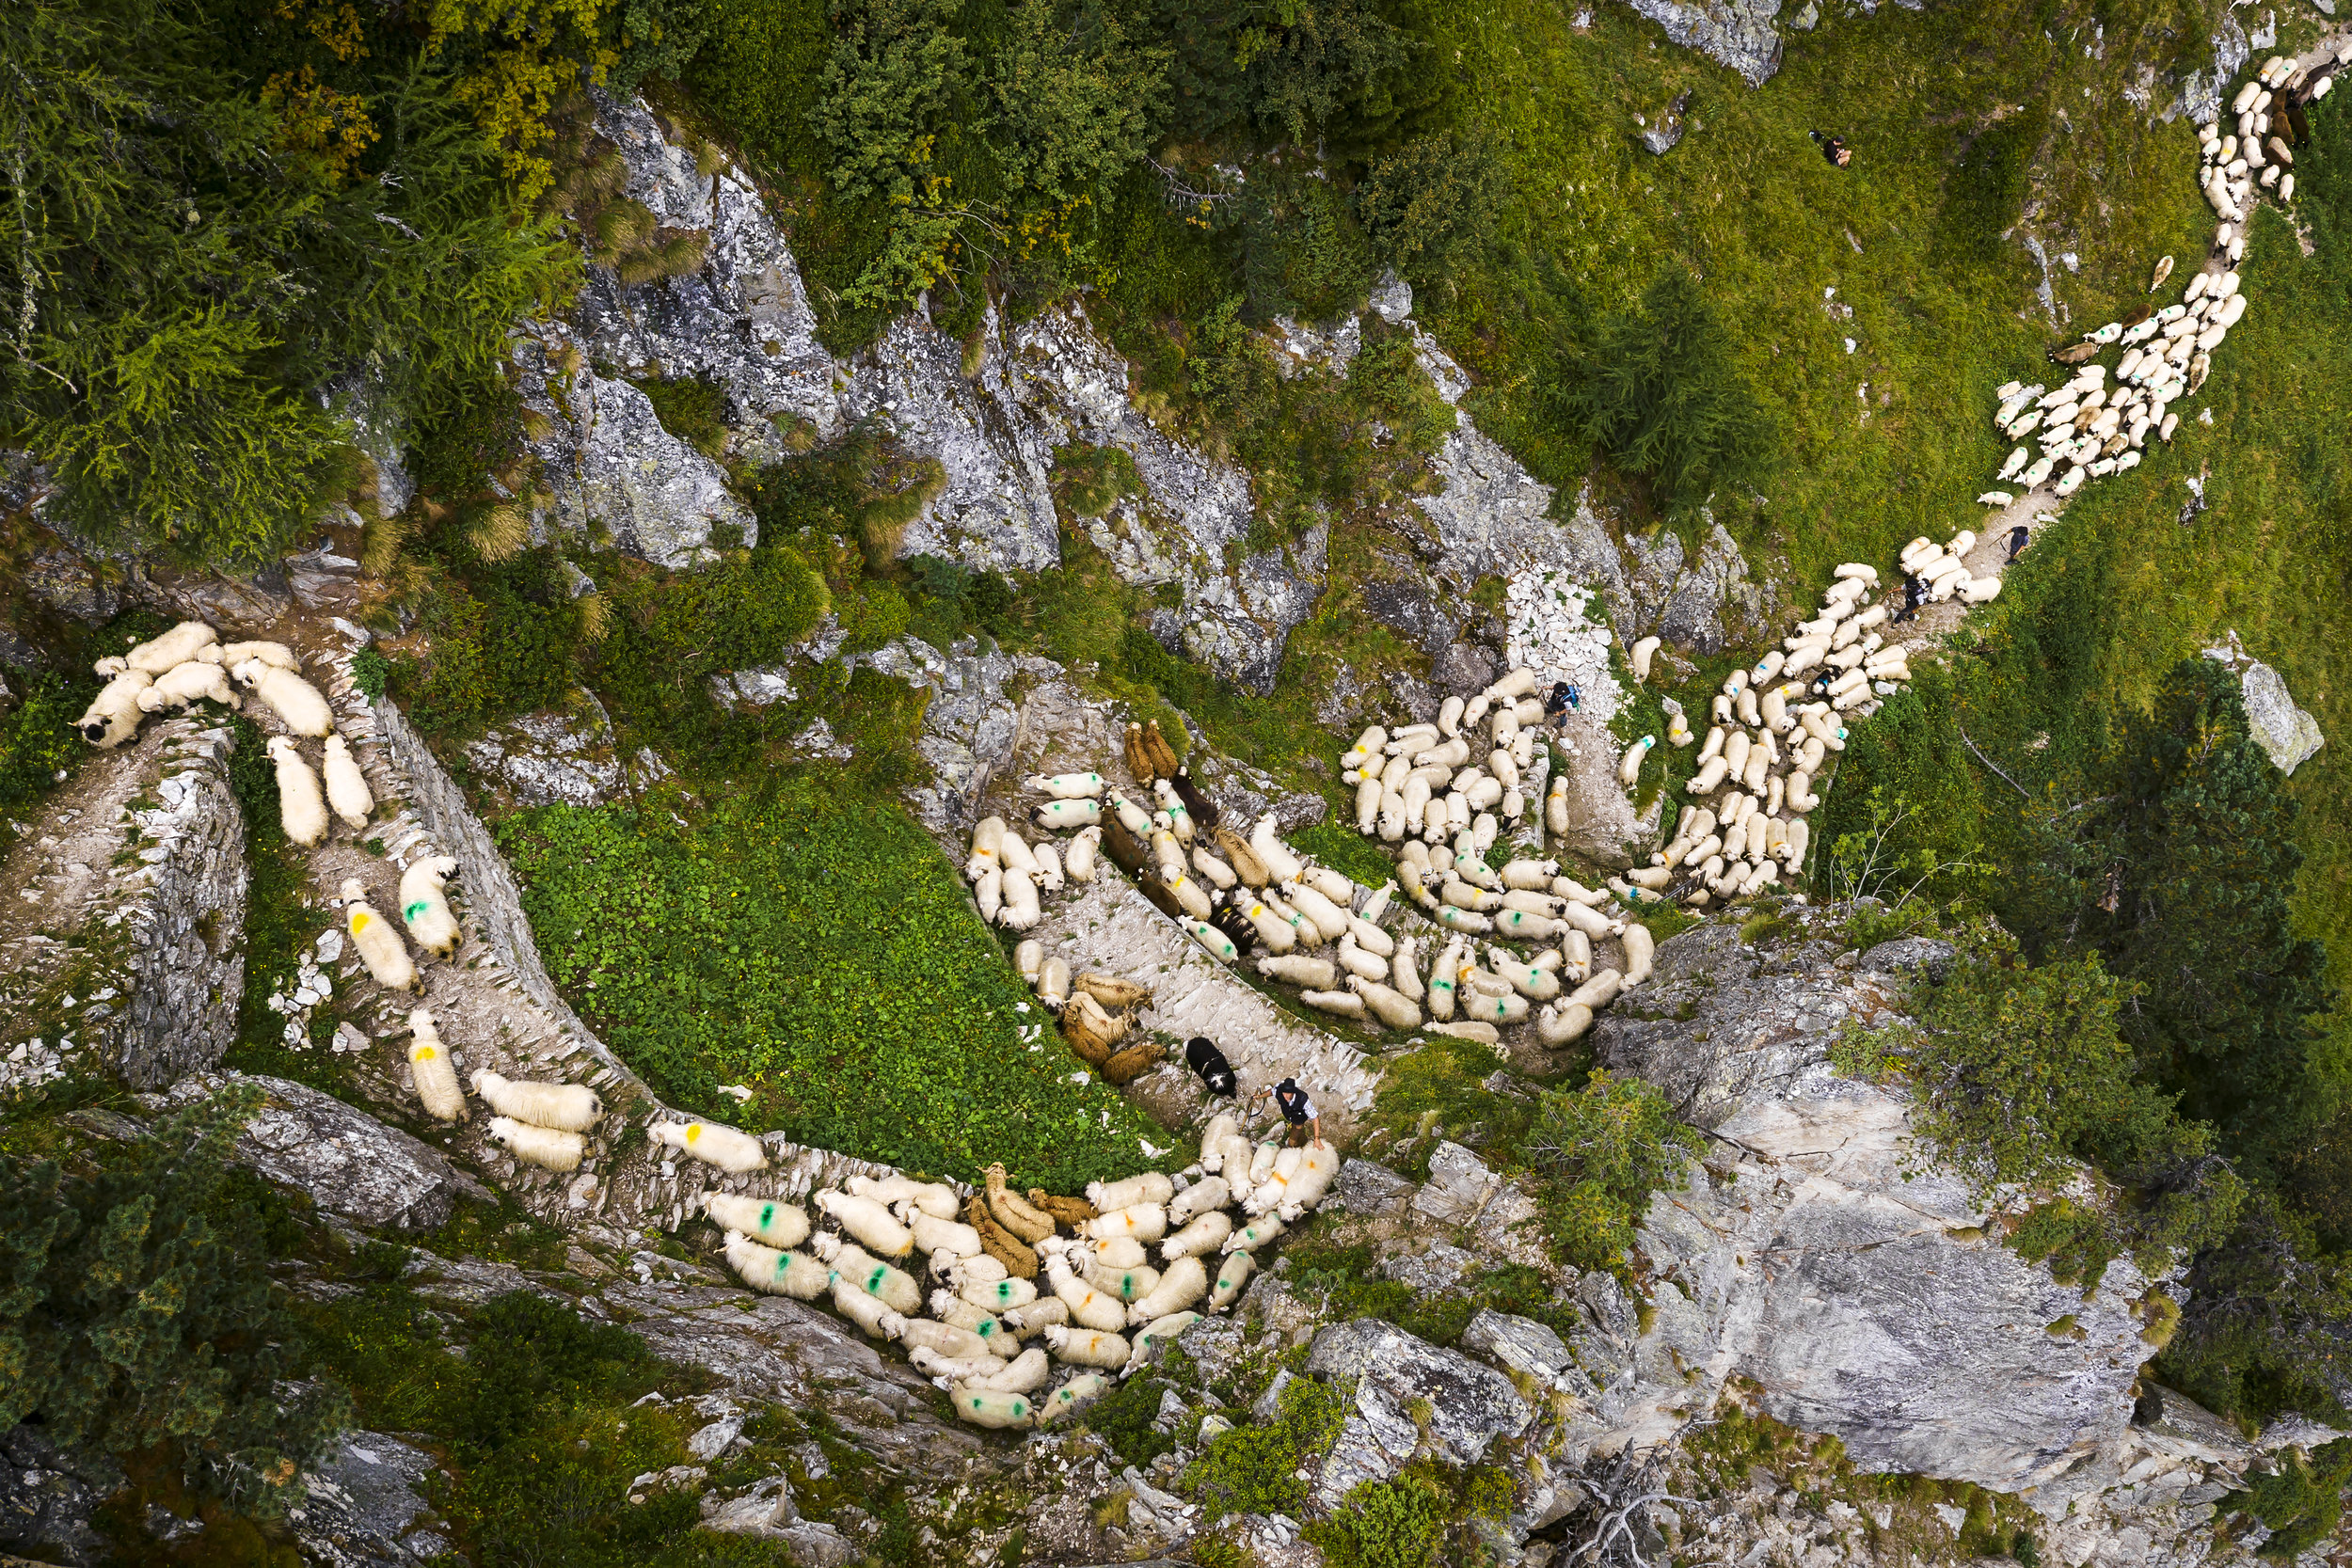 """A flock of alpine sheep are lead on a steep mountain path on their way to Belalp near Blatten, Switzerland, Saturday August 26, 2017. Shepherds are celebrated over the traditional shepherd weekend, known as """"Schaeferwochenende"""", after leading almost 800 sheep during a three-day hike from the summer pastures, high above the Aletsch glacier, down to Belalp in the canton of Valais for the winter season. (KEYSTONE/Valentin Flauraud)"""